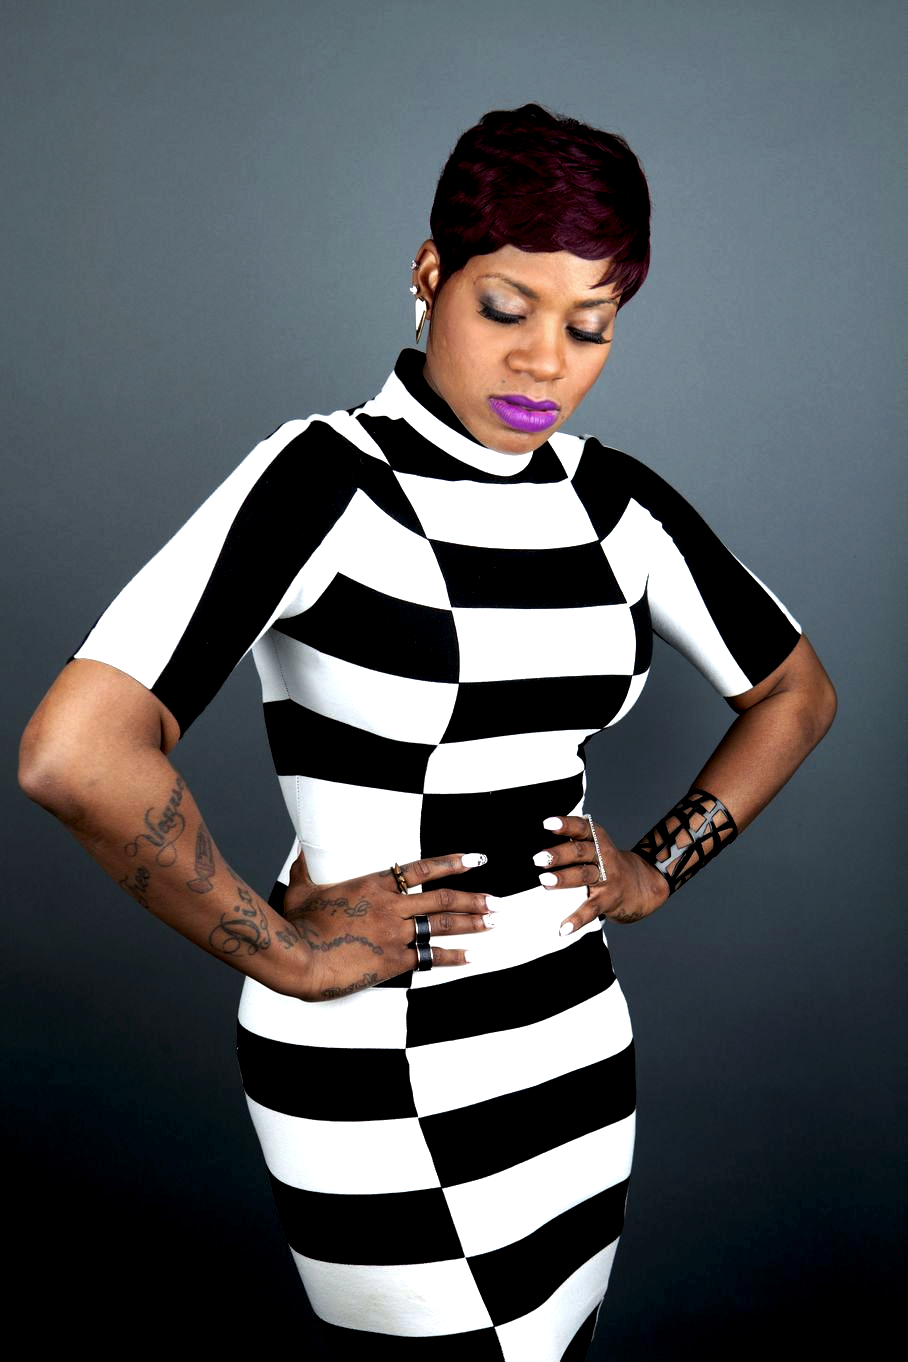 Fantasia Hairstyles the cut life thecutlife oh hey tasiaswoinstagram photo fantasia hairstylessweet Fantasia Barrino More